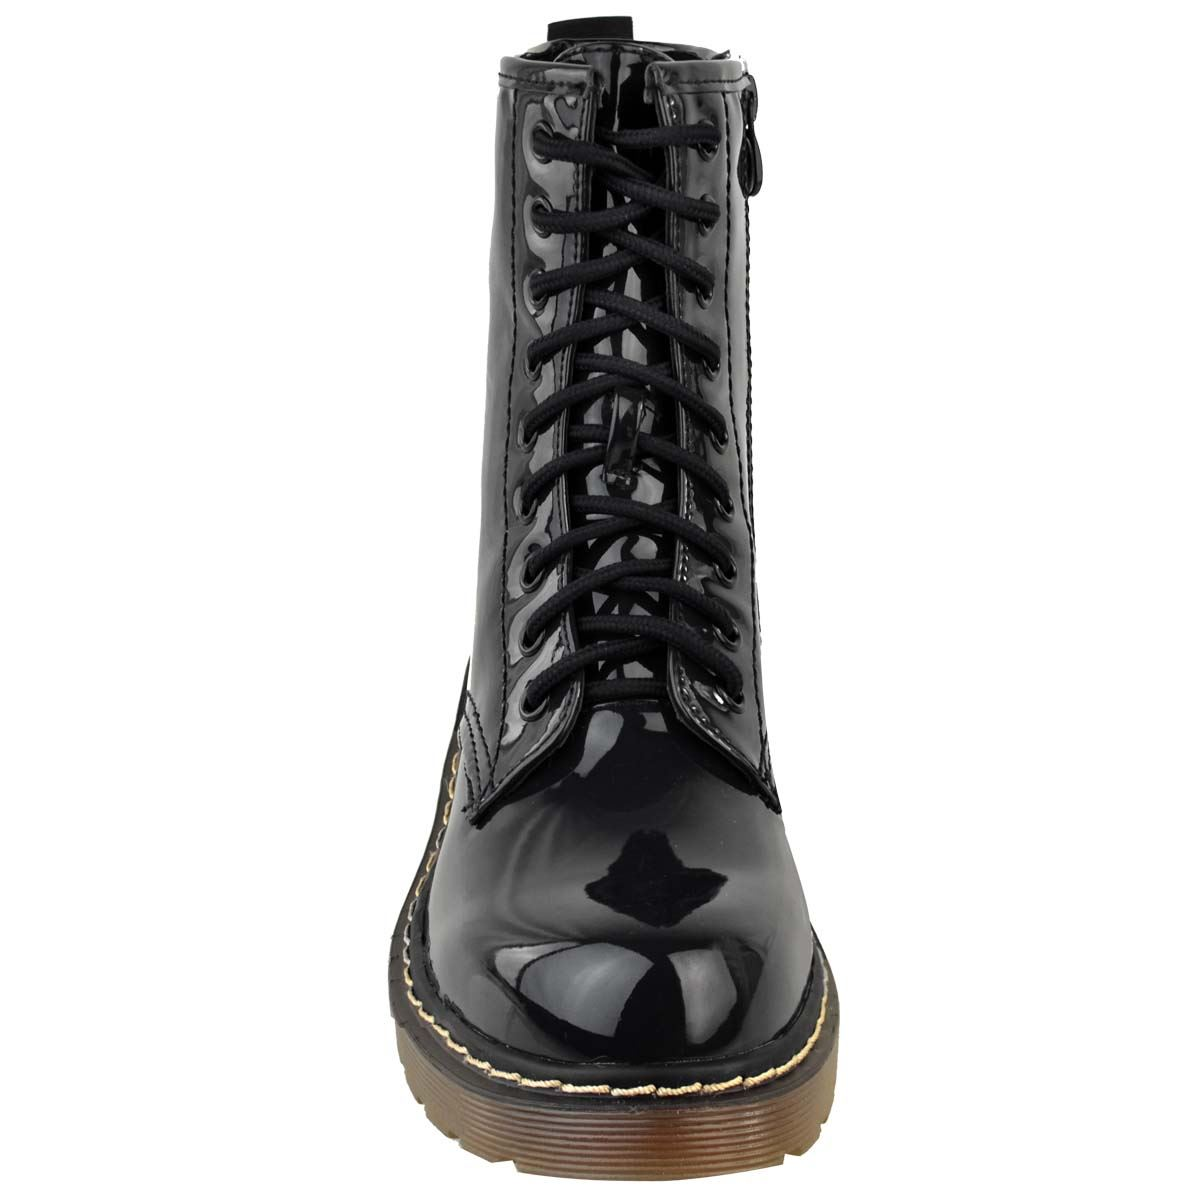 Womens-Doc-Ankle-Boots-Black-Faux-Leather-Patent-Lace-Up-Flat-Work-Army-Air-Goth thumbnail 6